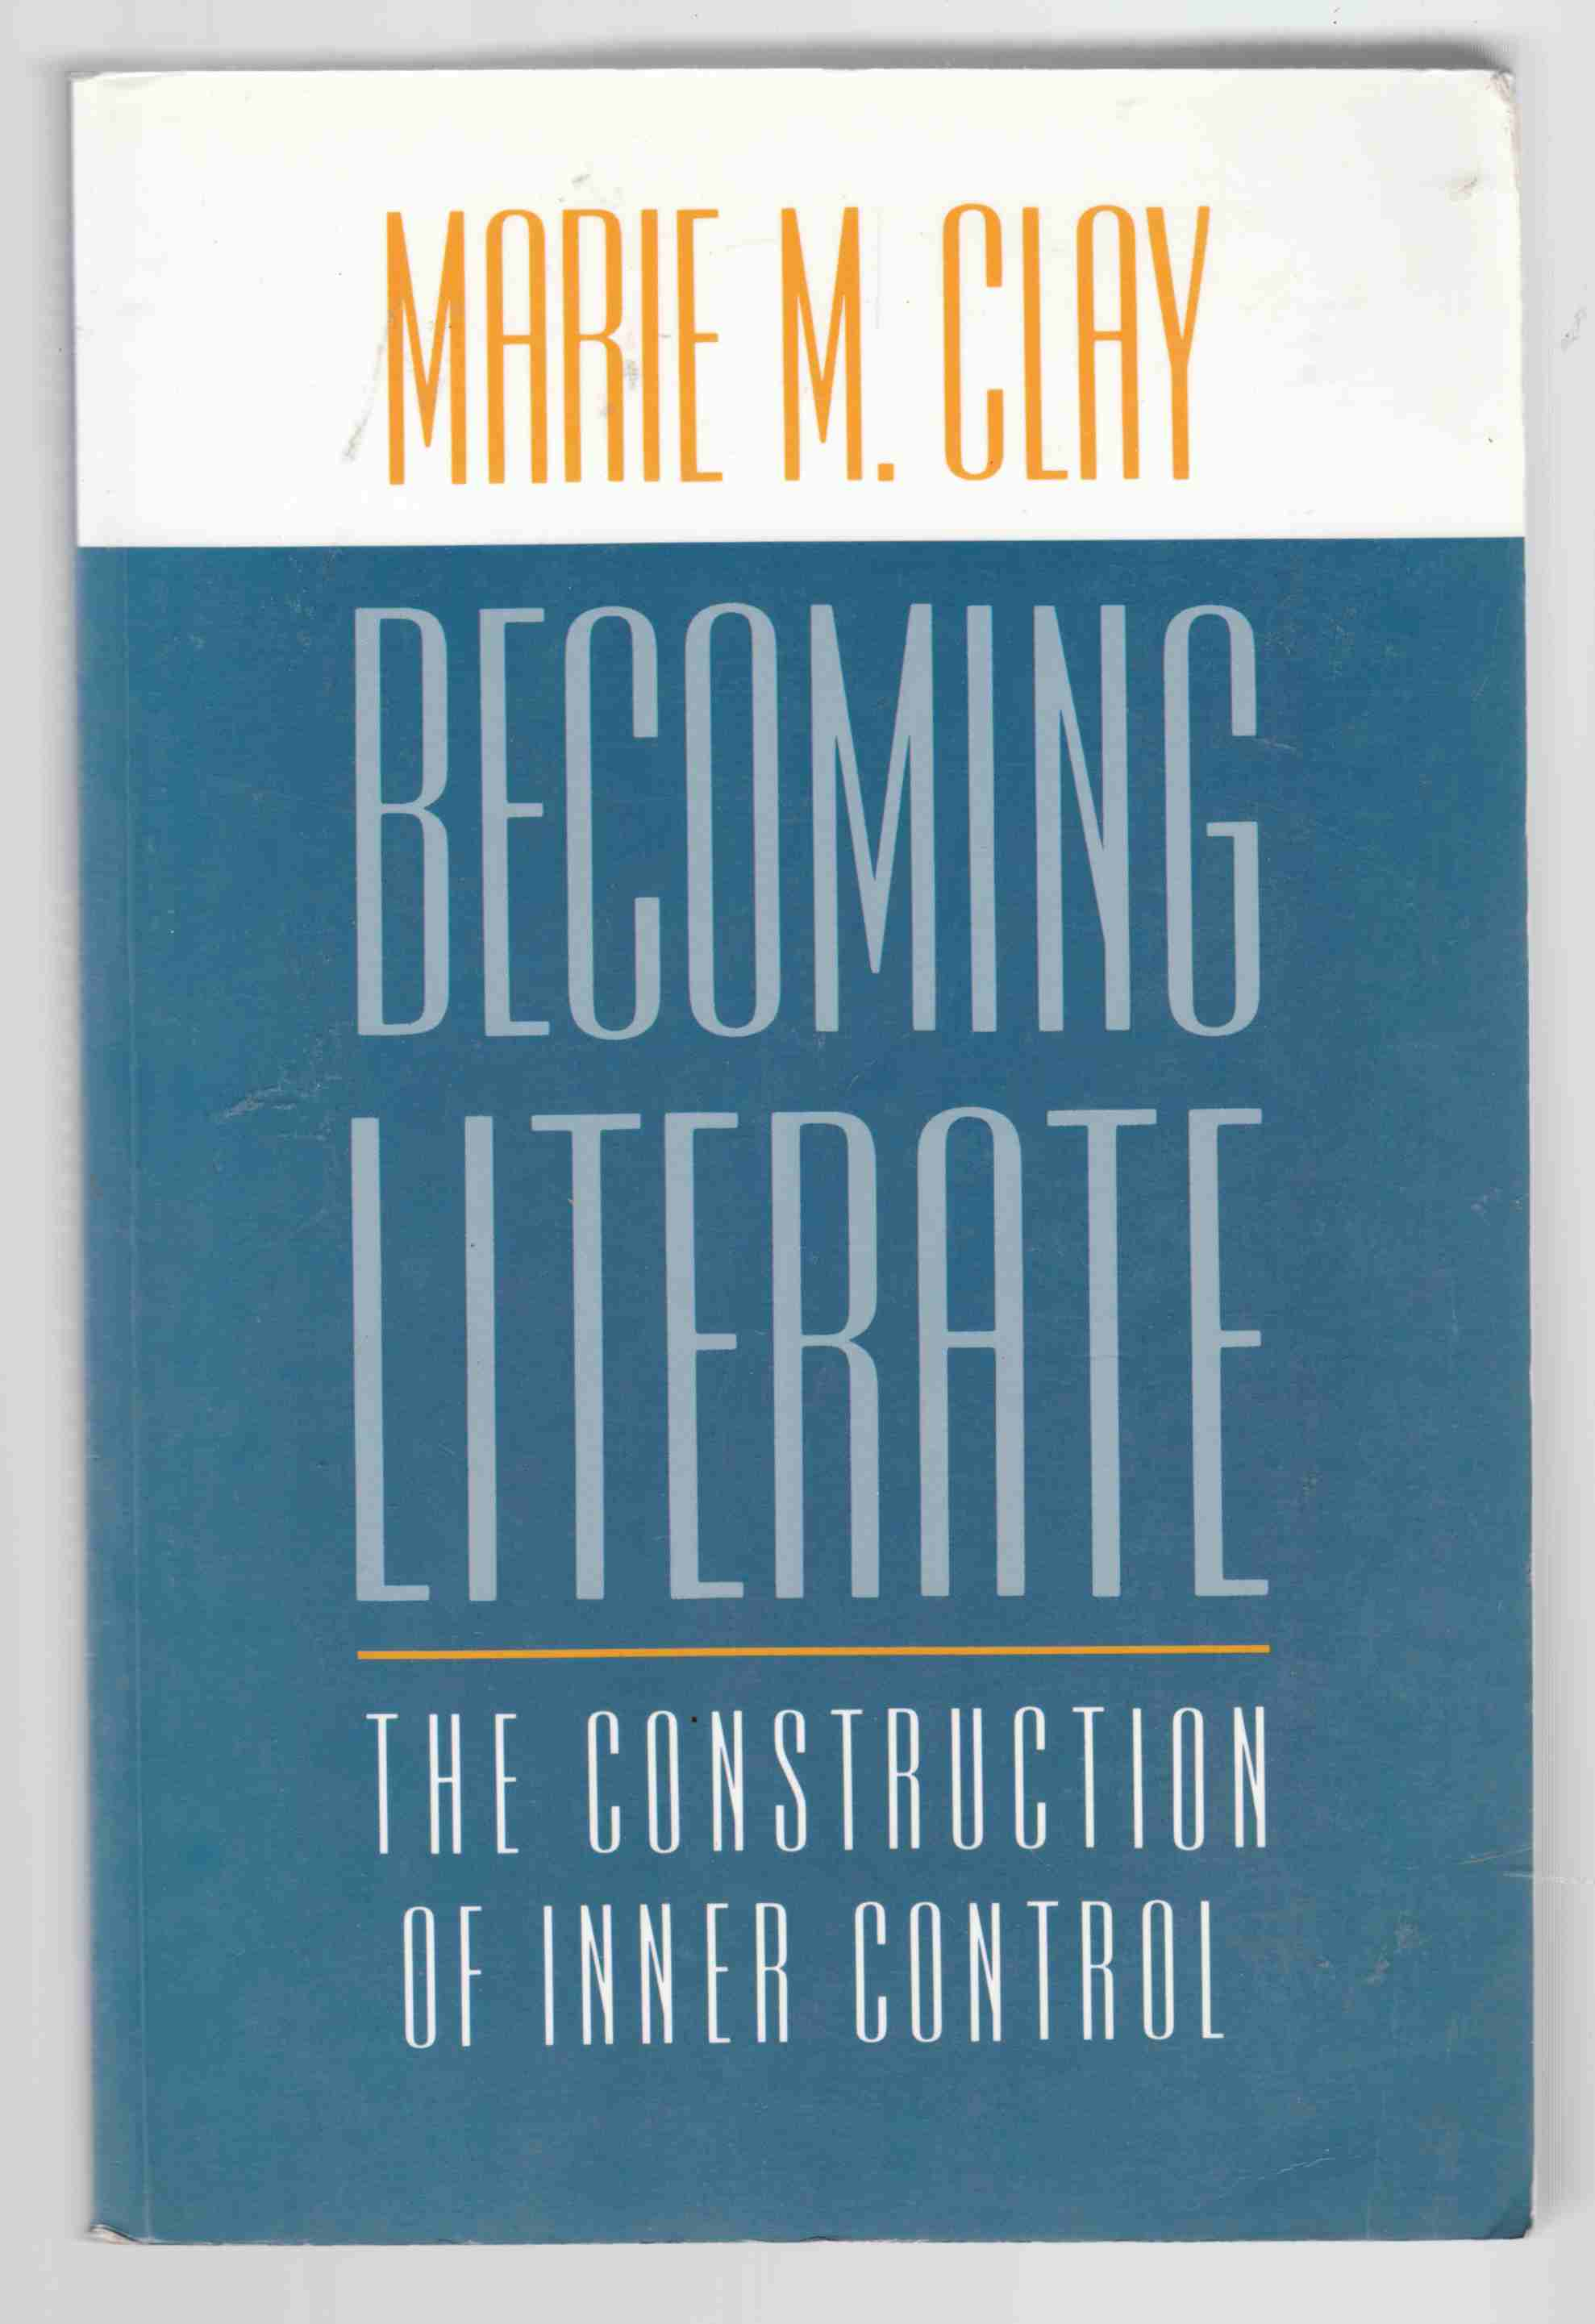 Image for Becoming Literate The Construction of Inner Control